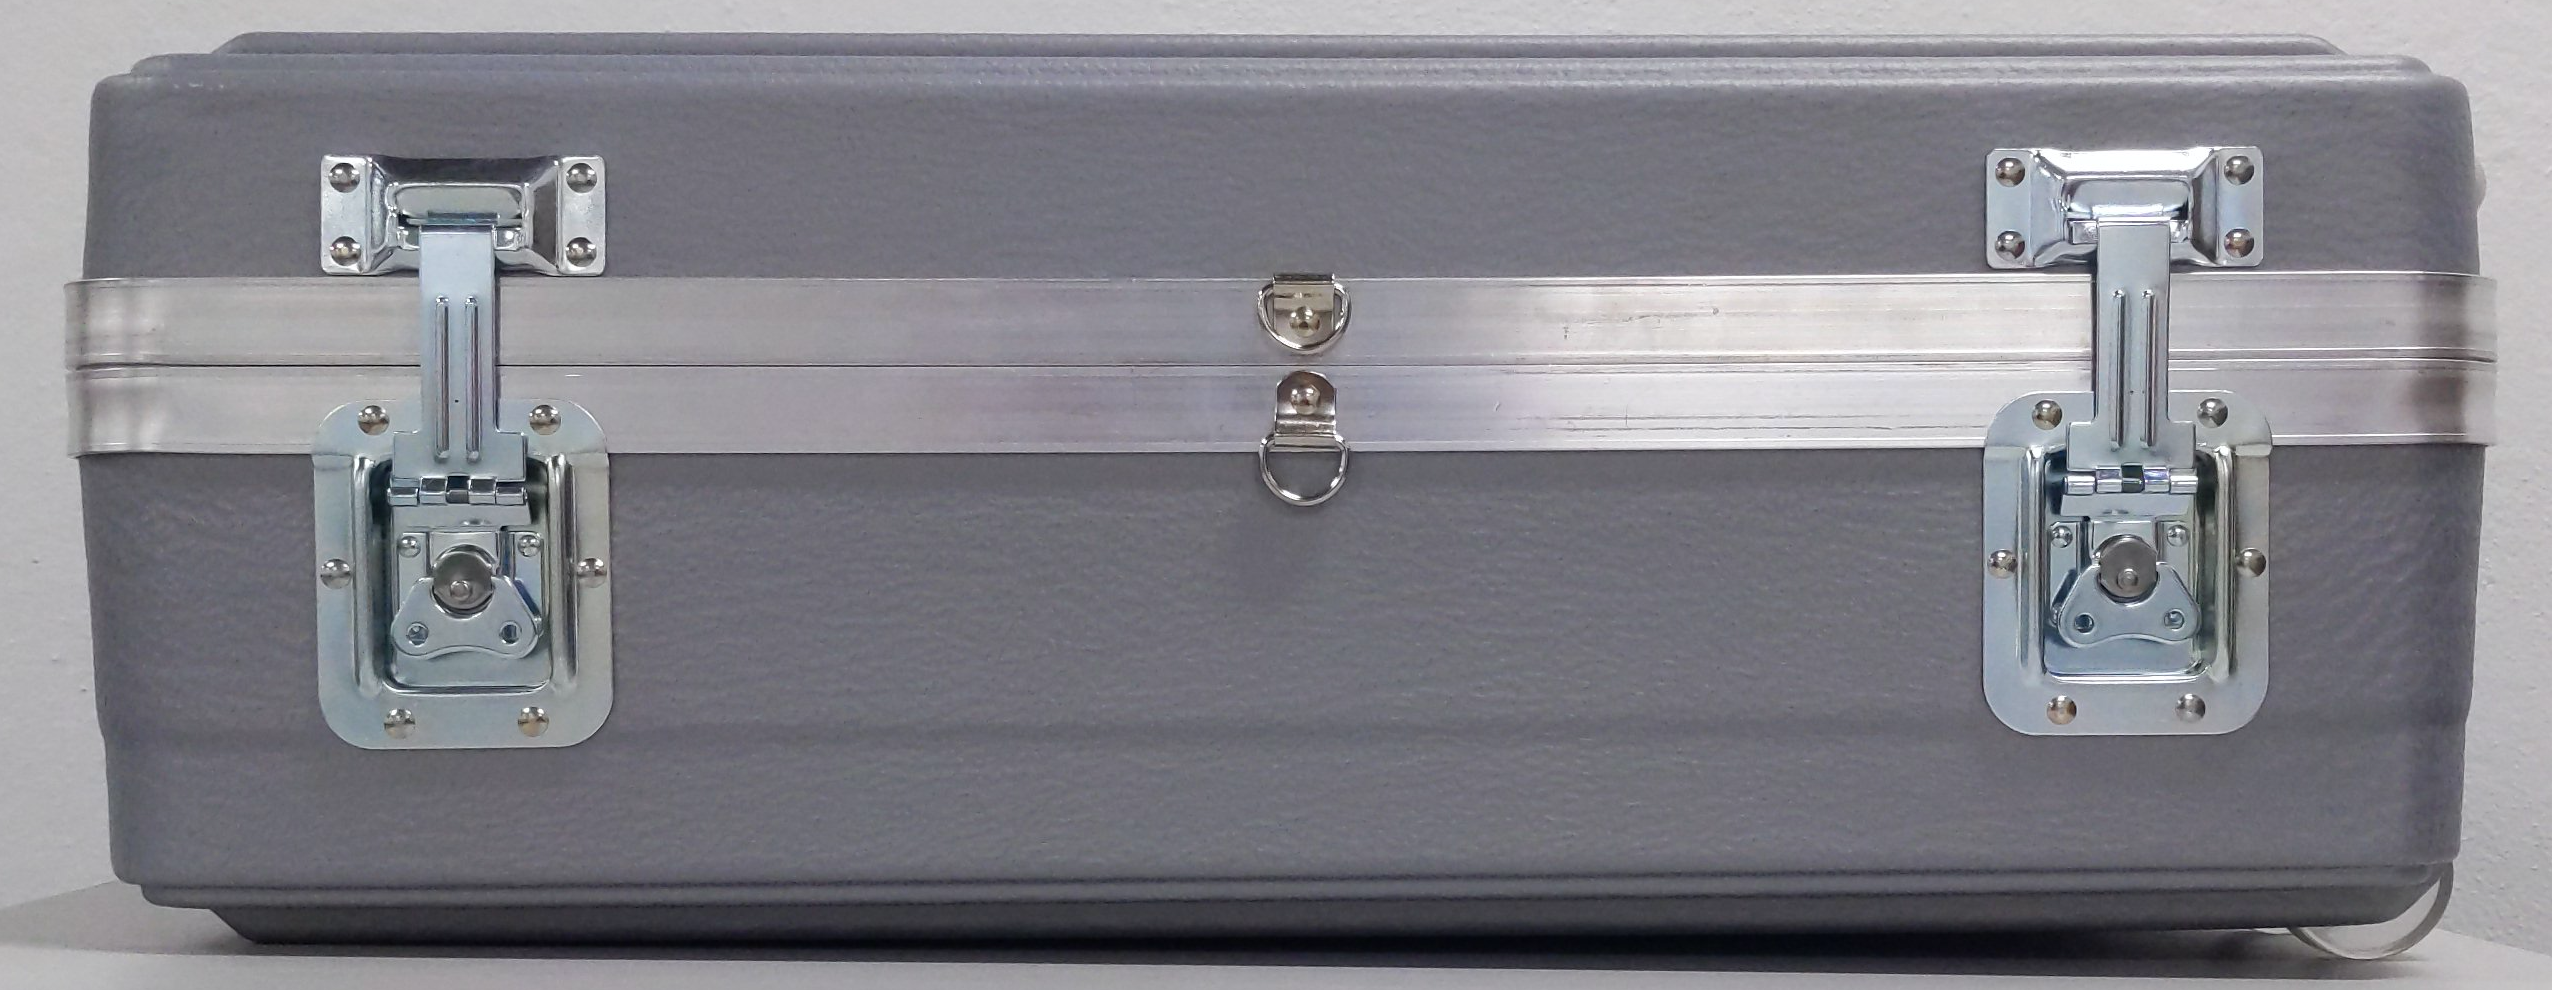 Shipping case latched